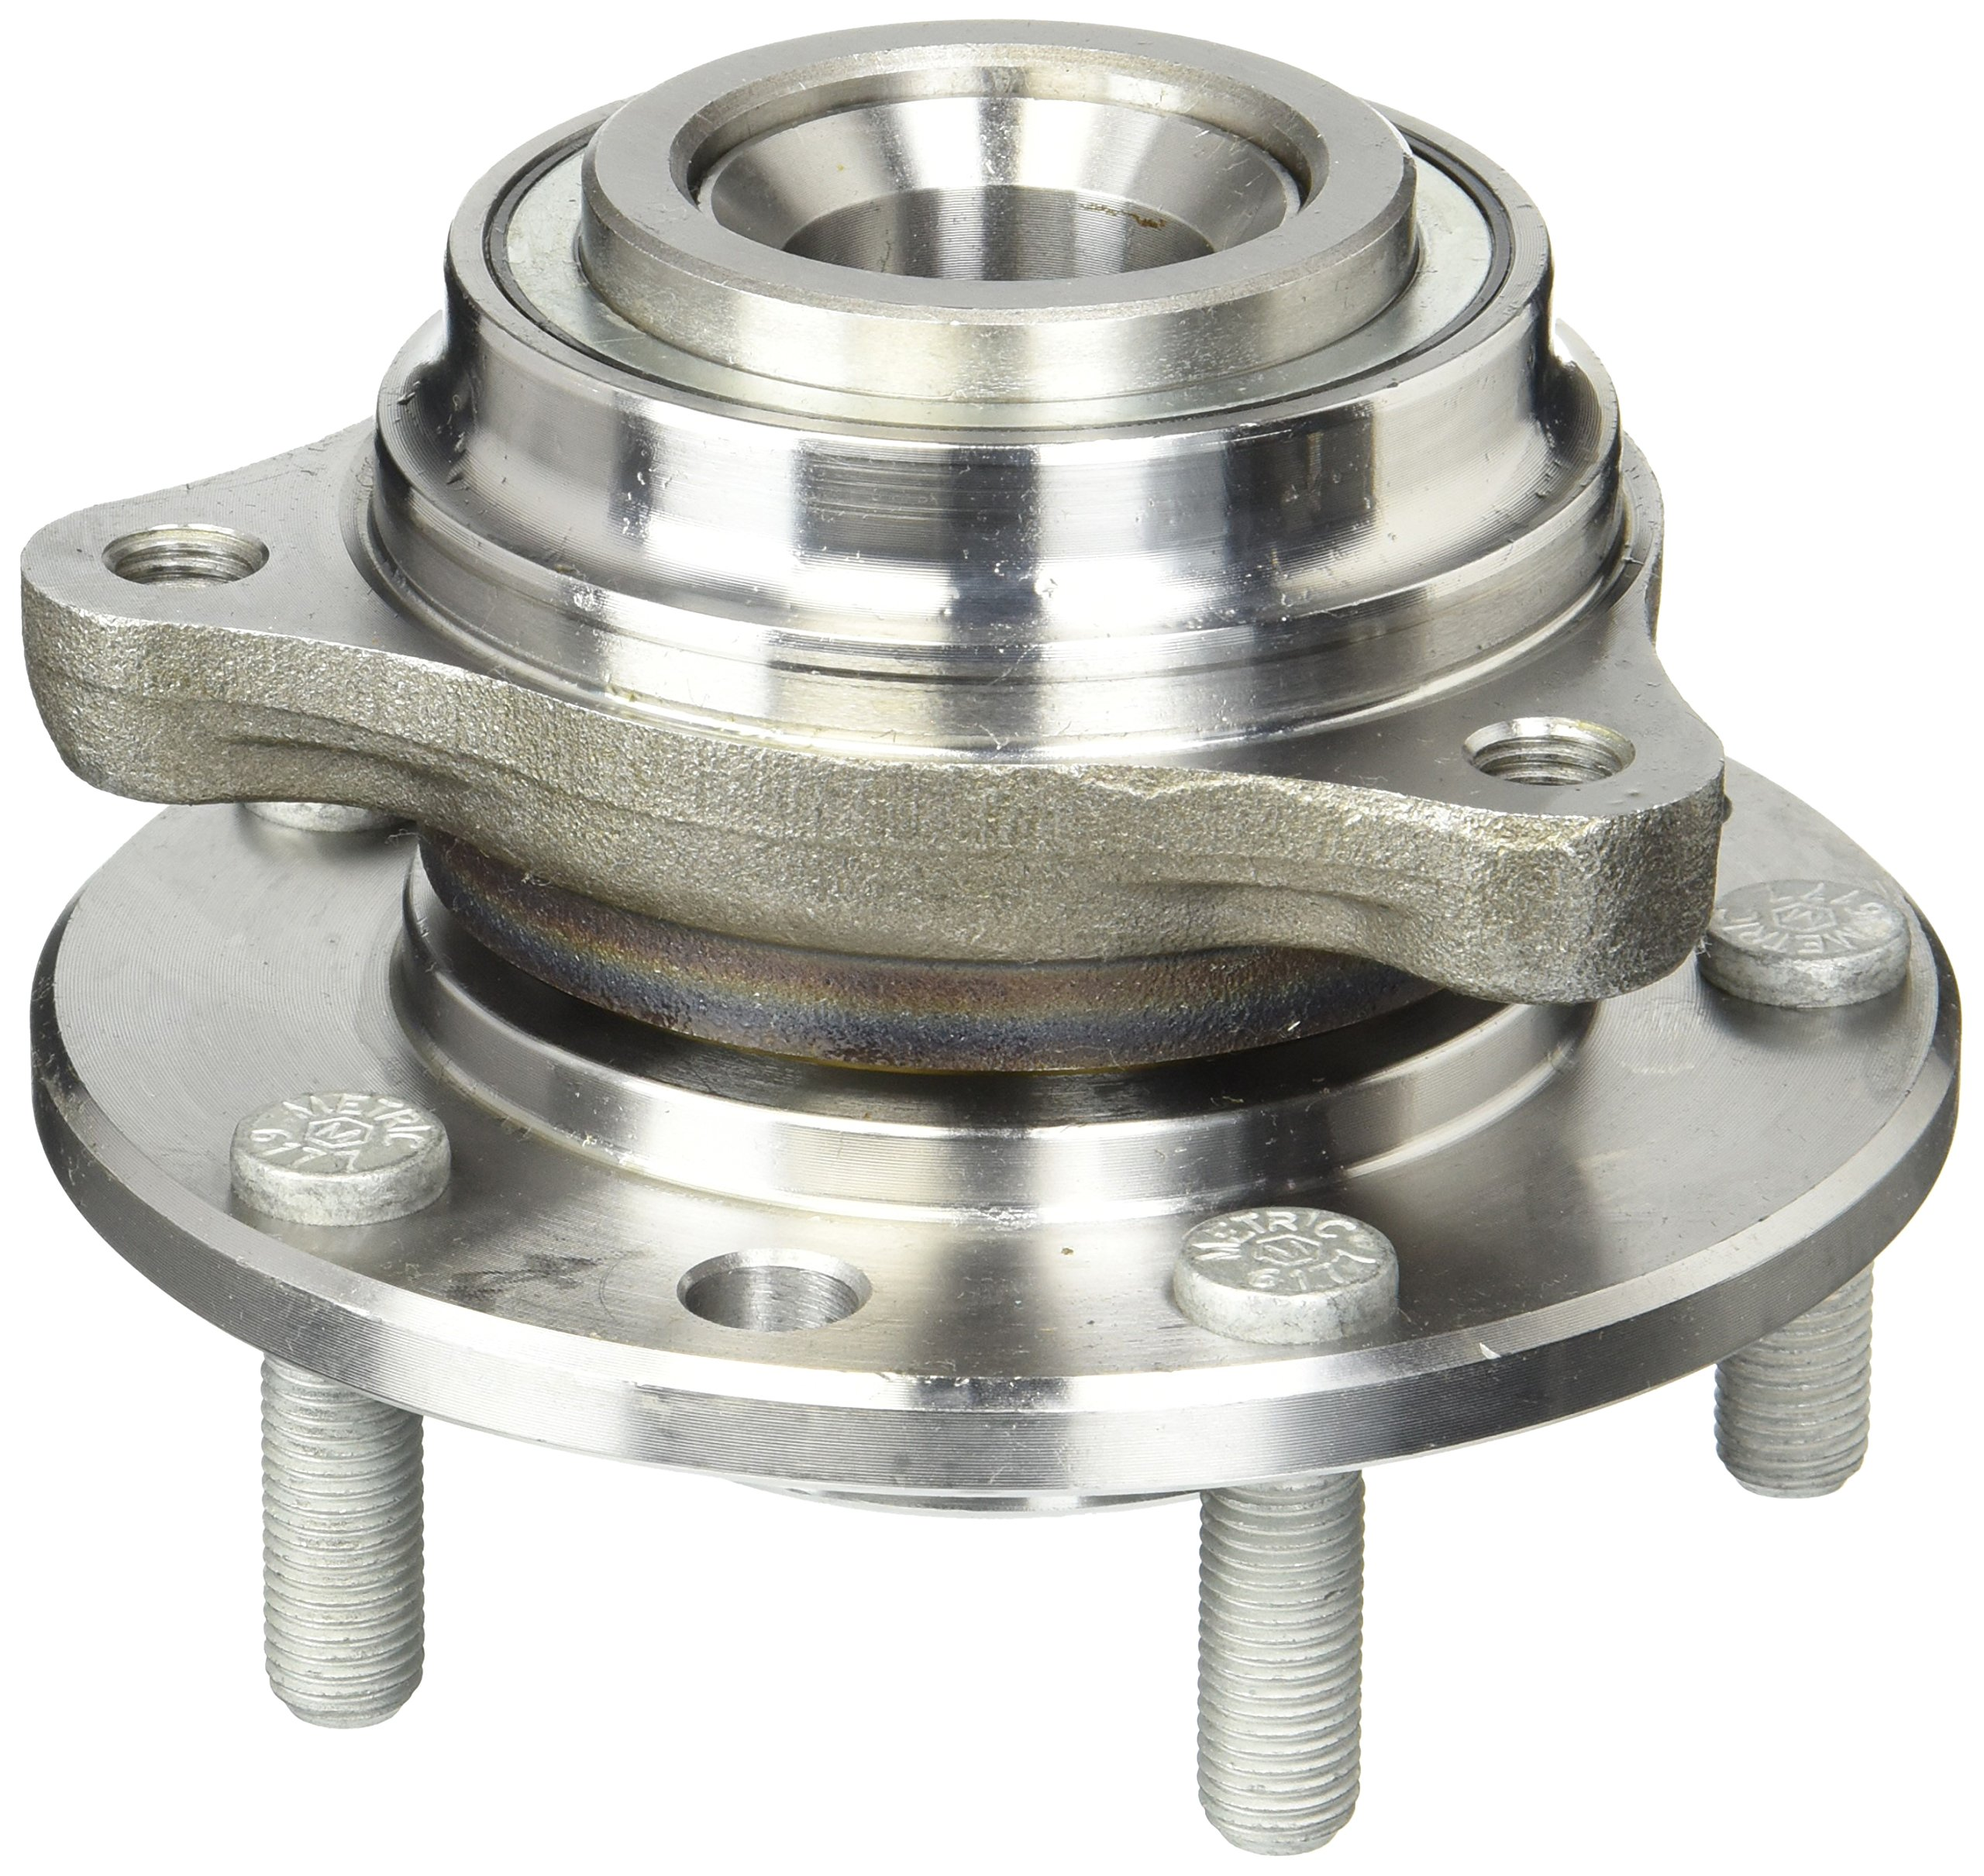 Timken 513020 Axle Bearing and Hub Assembly by Timken